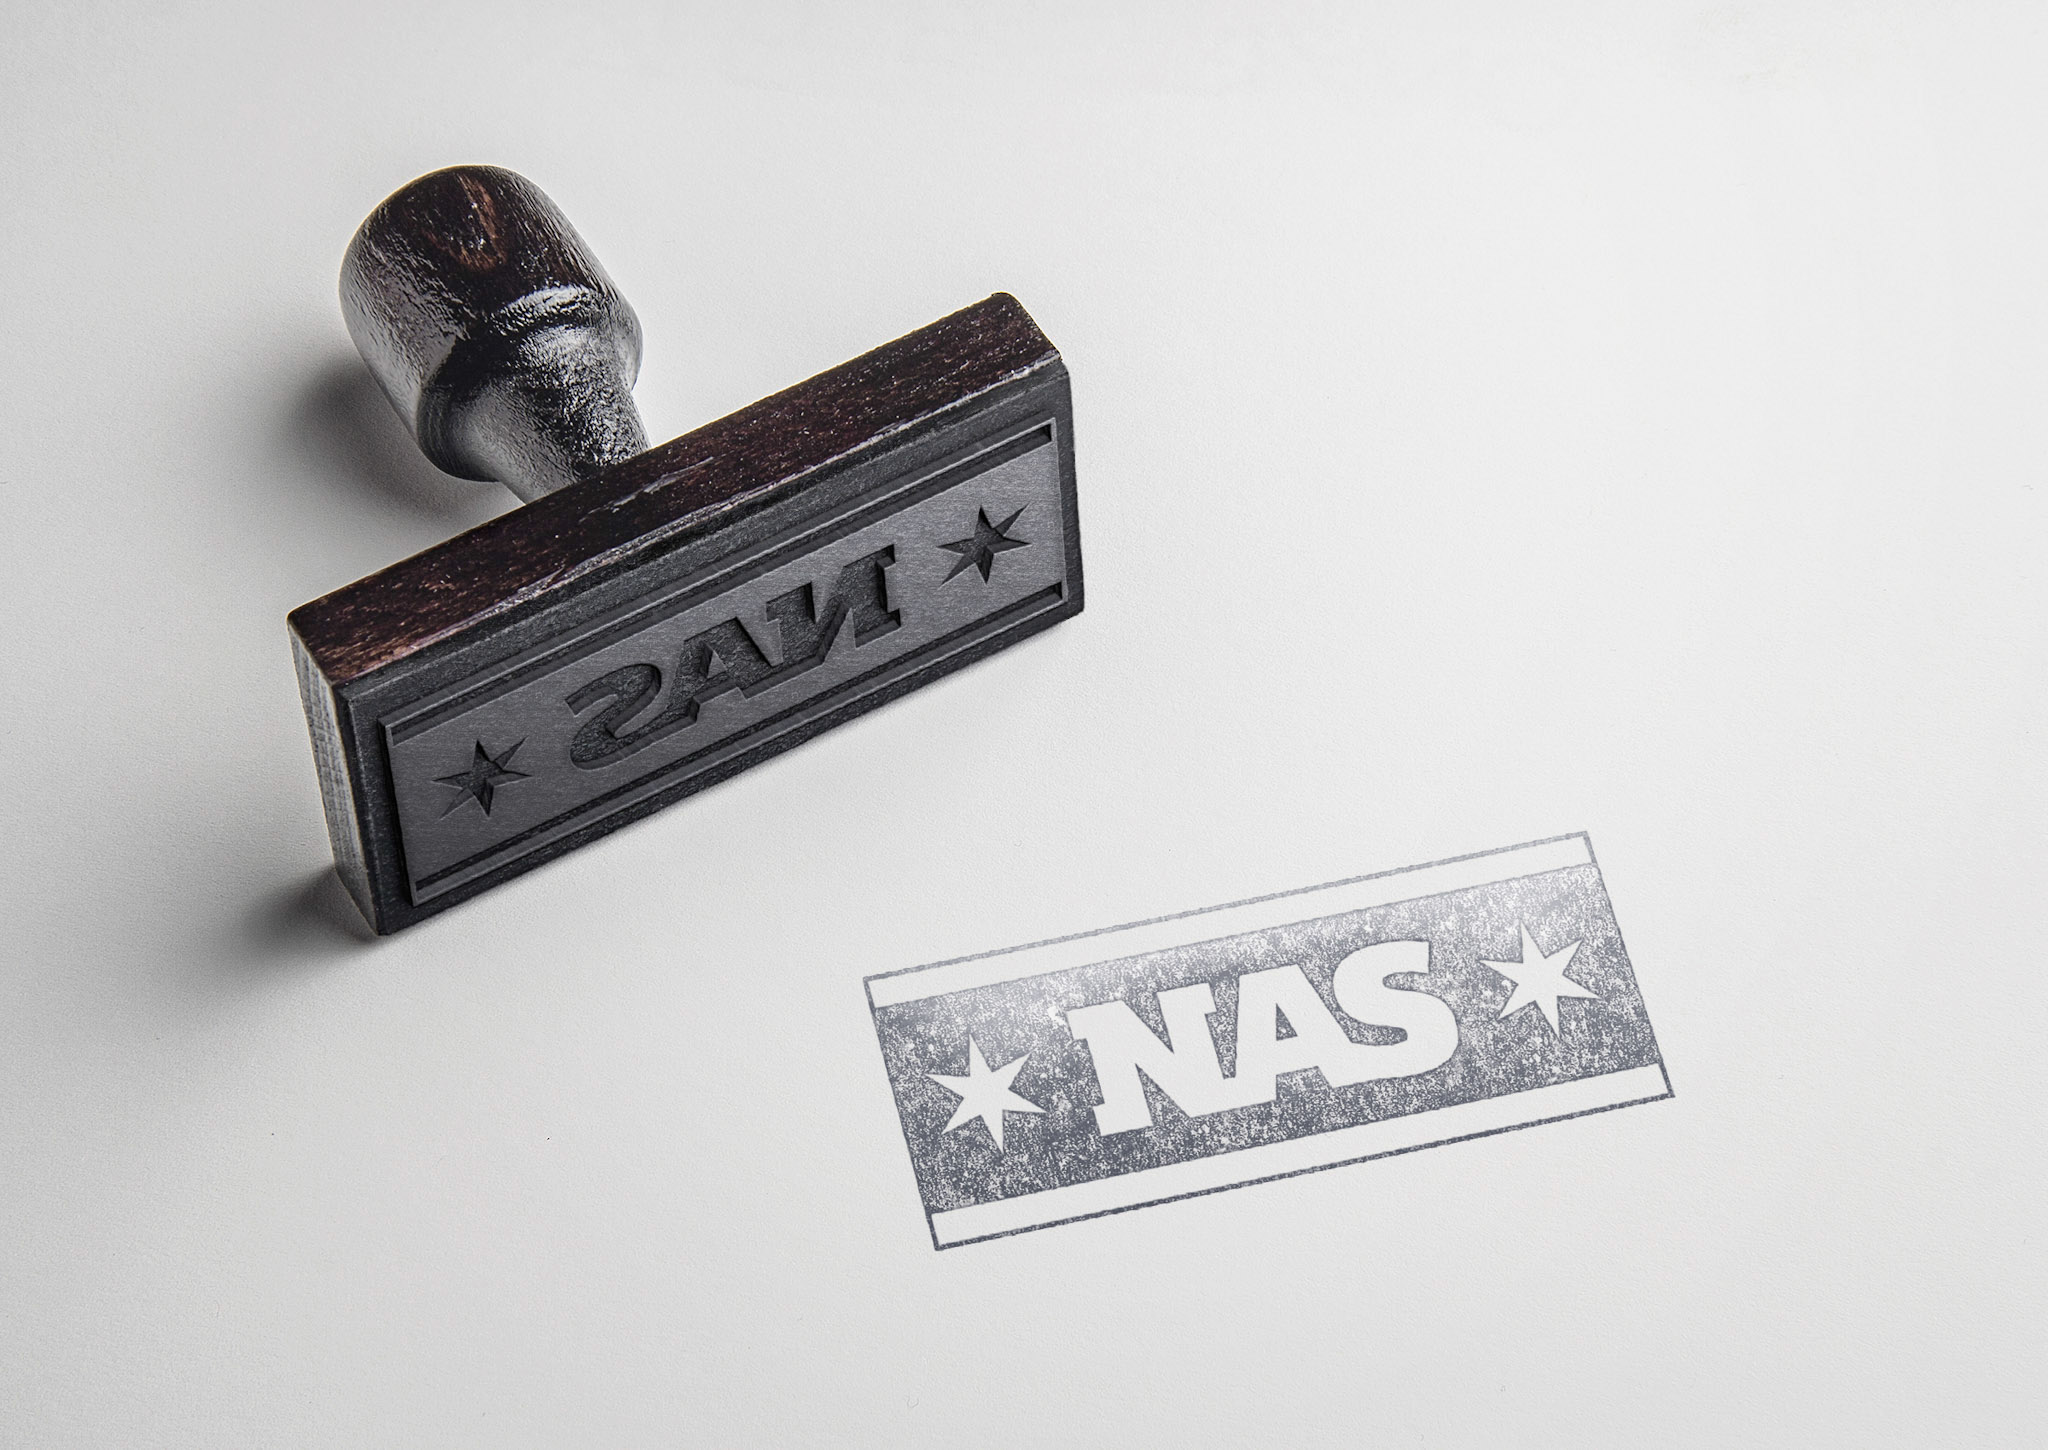 This is an image of the shorthand logo mocked up as a rubber stamp.